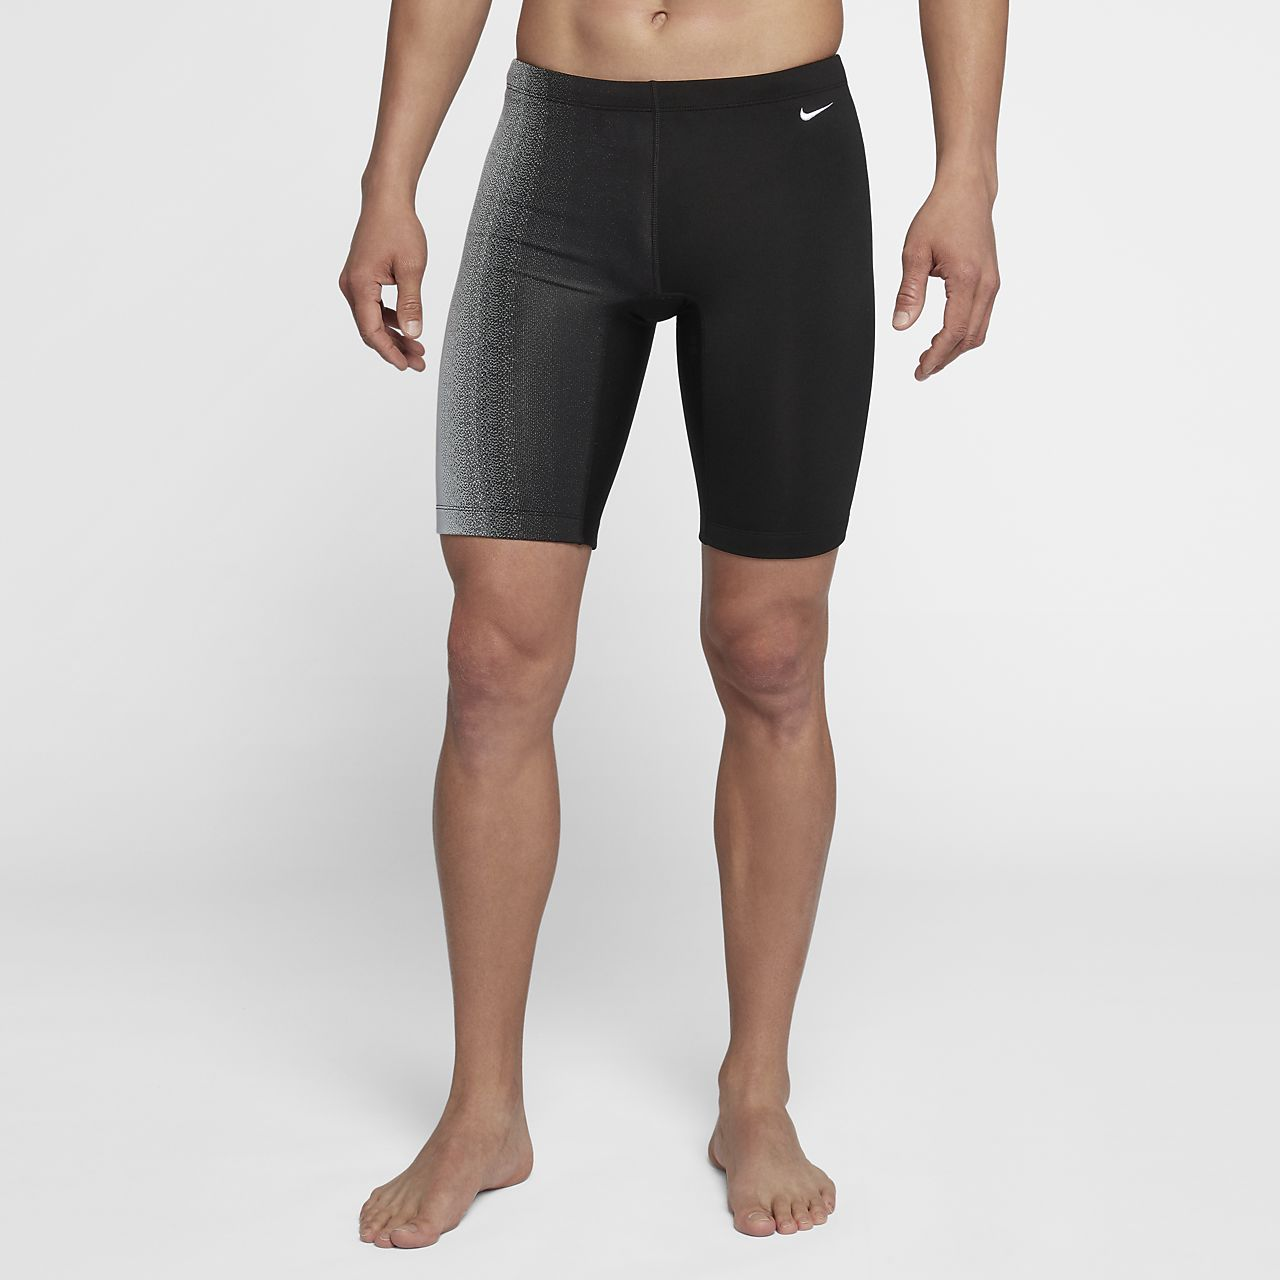 Nike Fade Sting Men's Swim Jammer